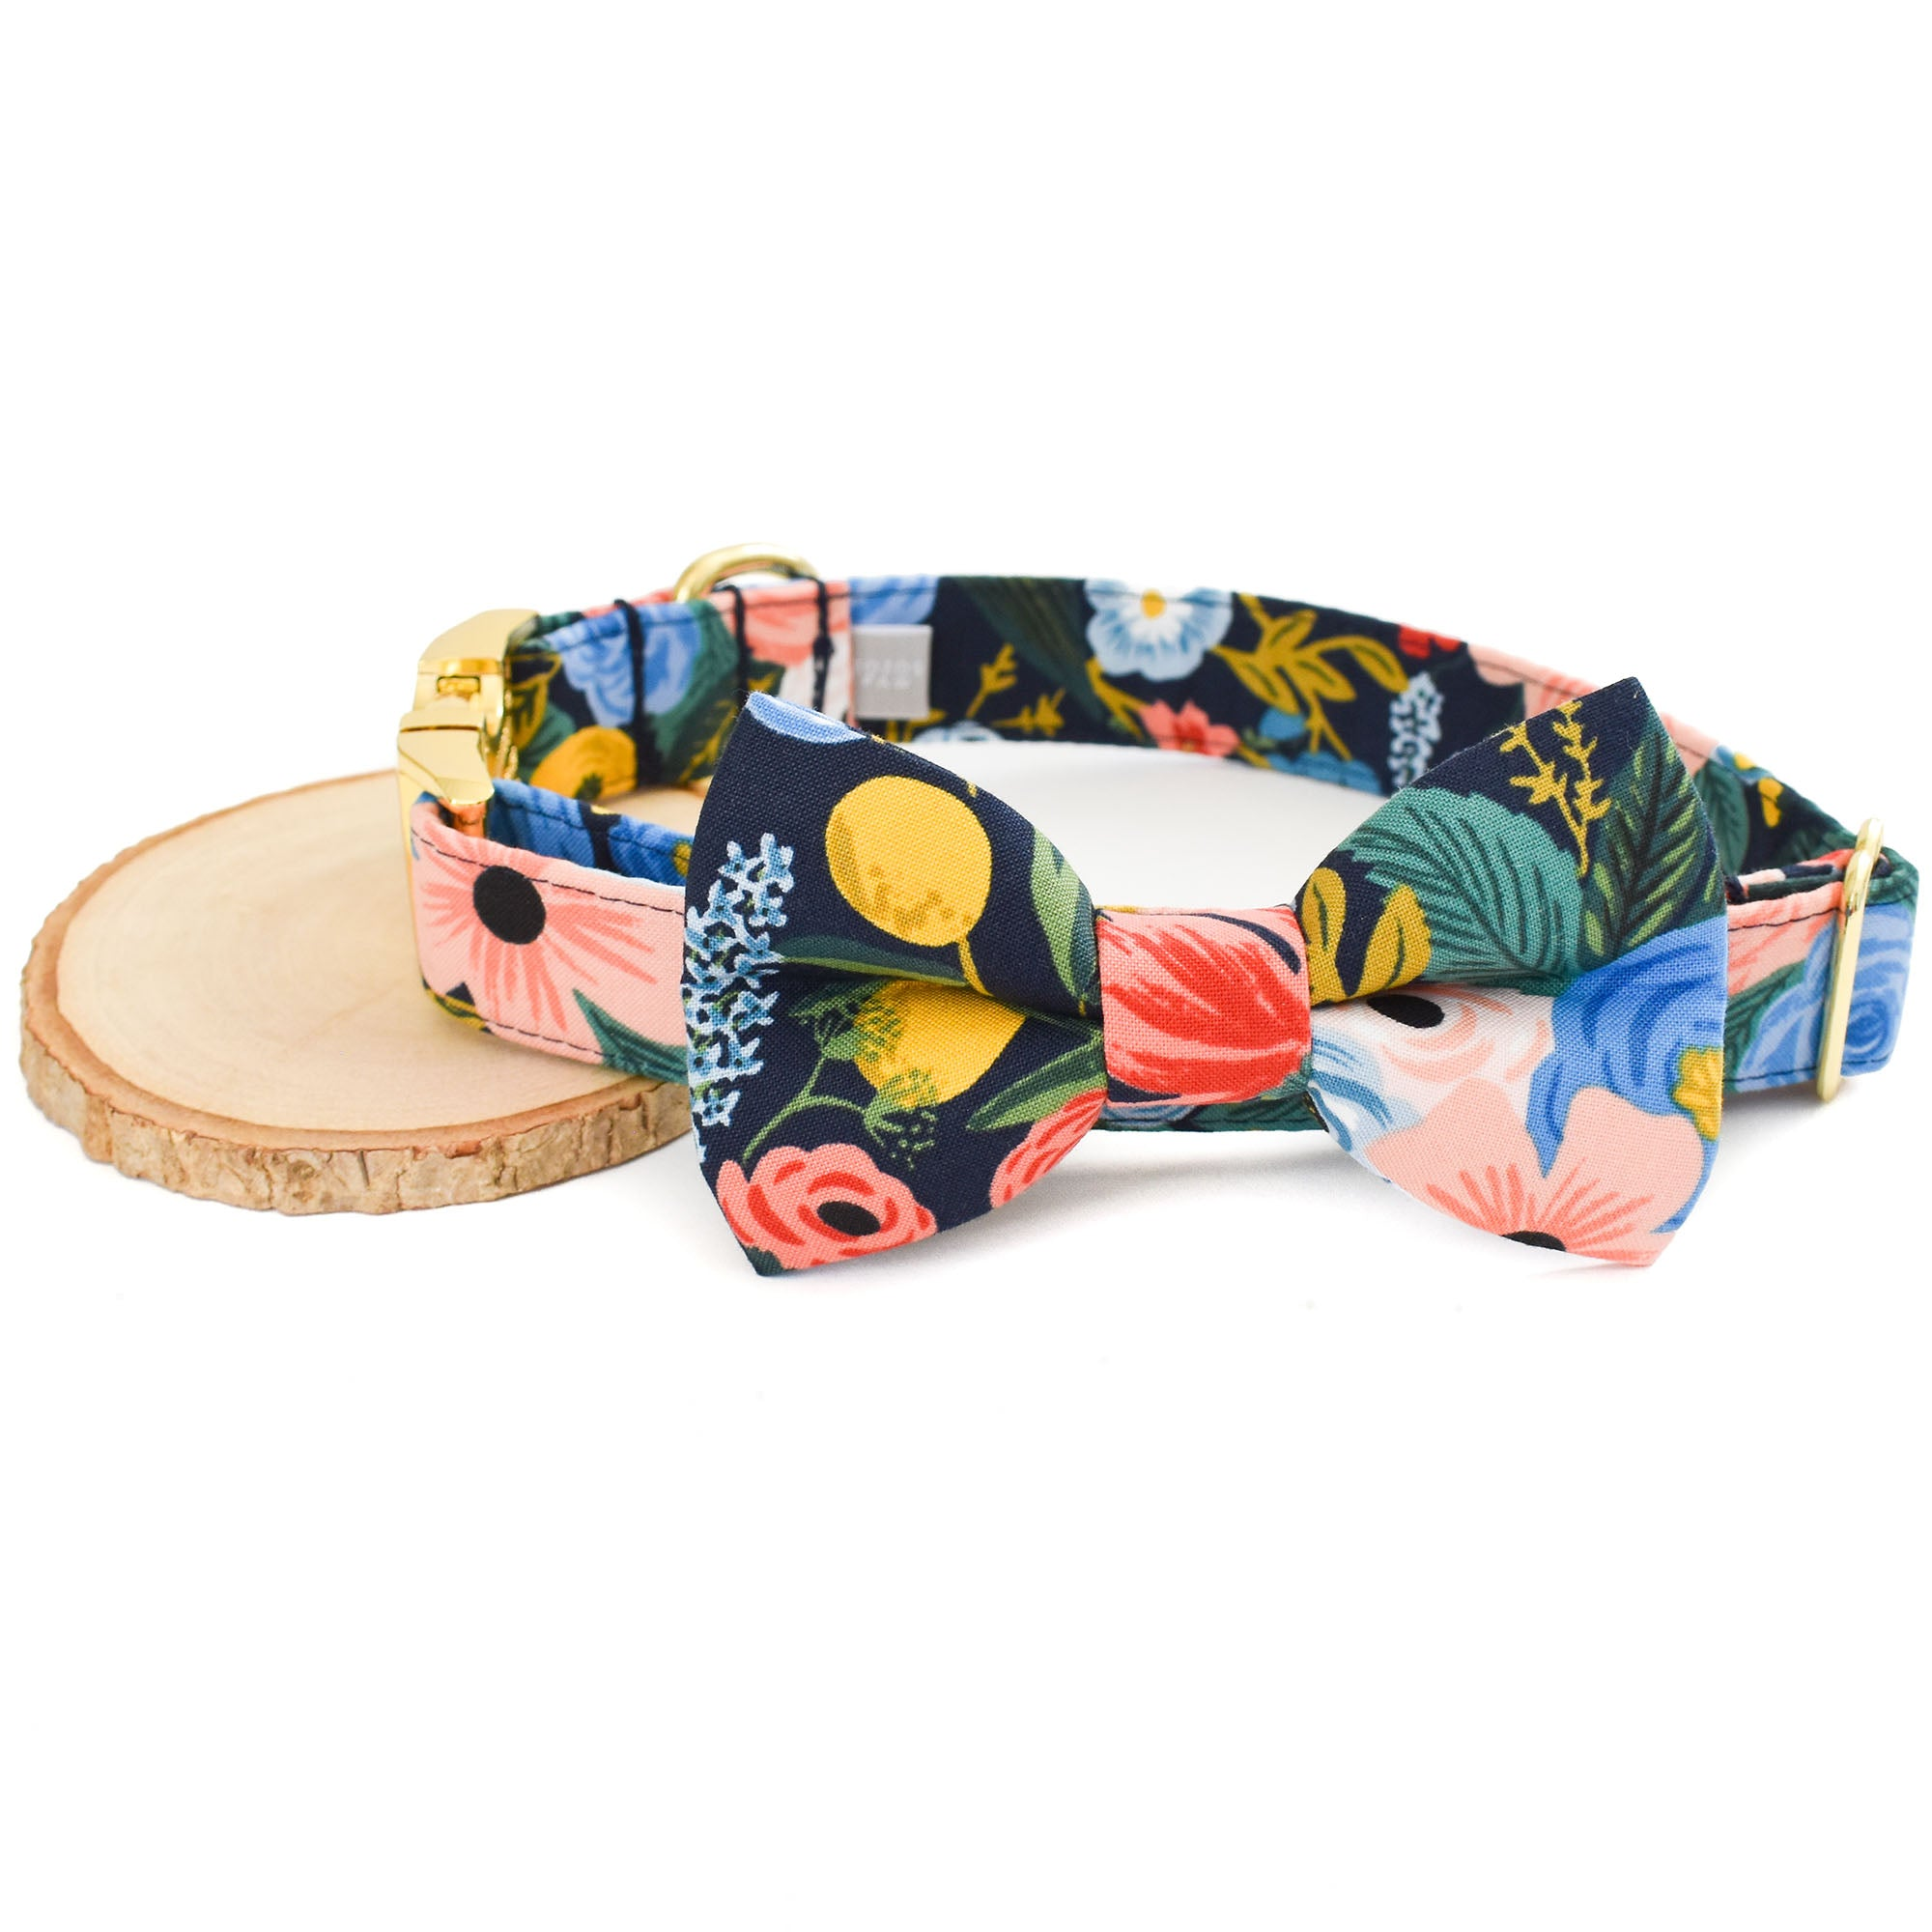 GARDEN PARTY DOG COLLAR AND BOW TIE SET